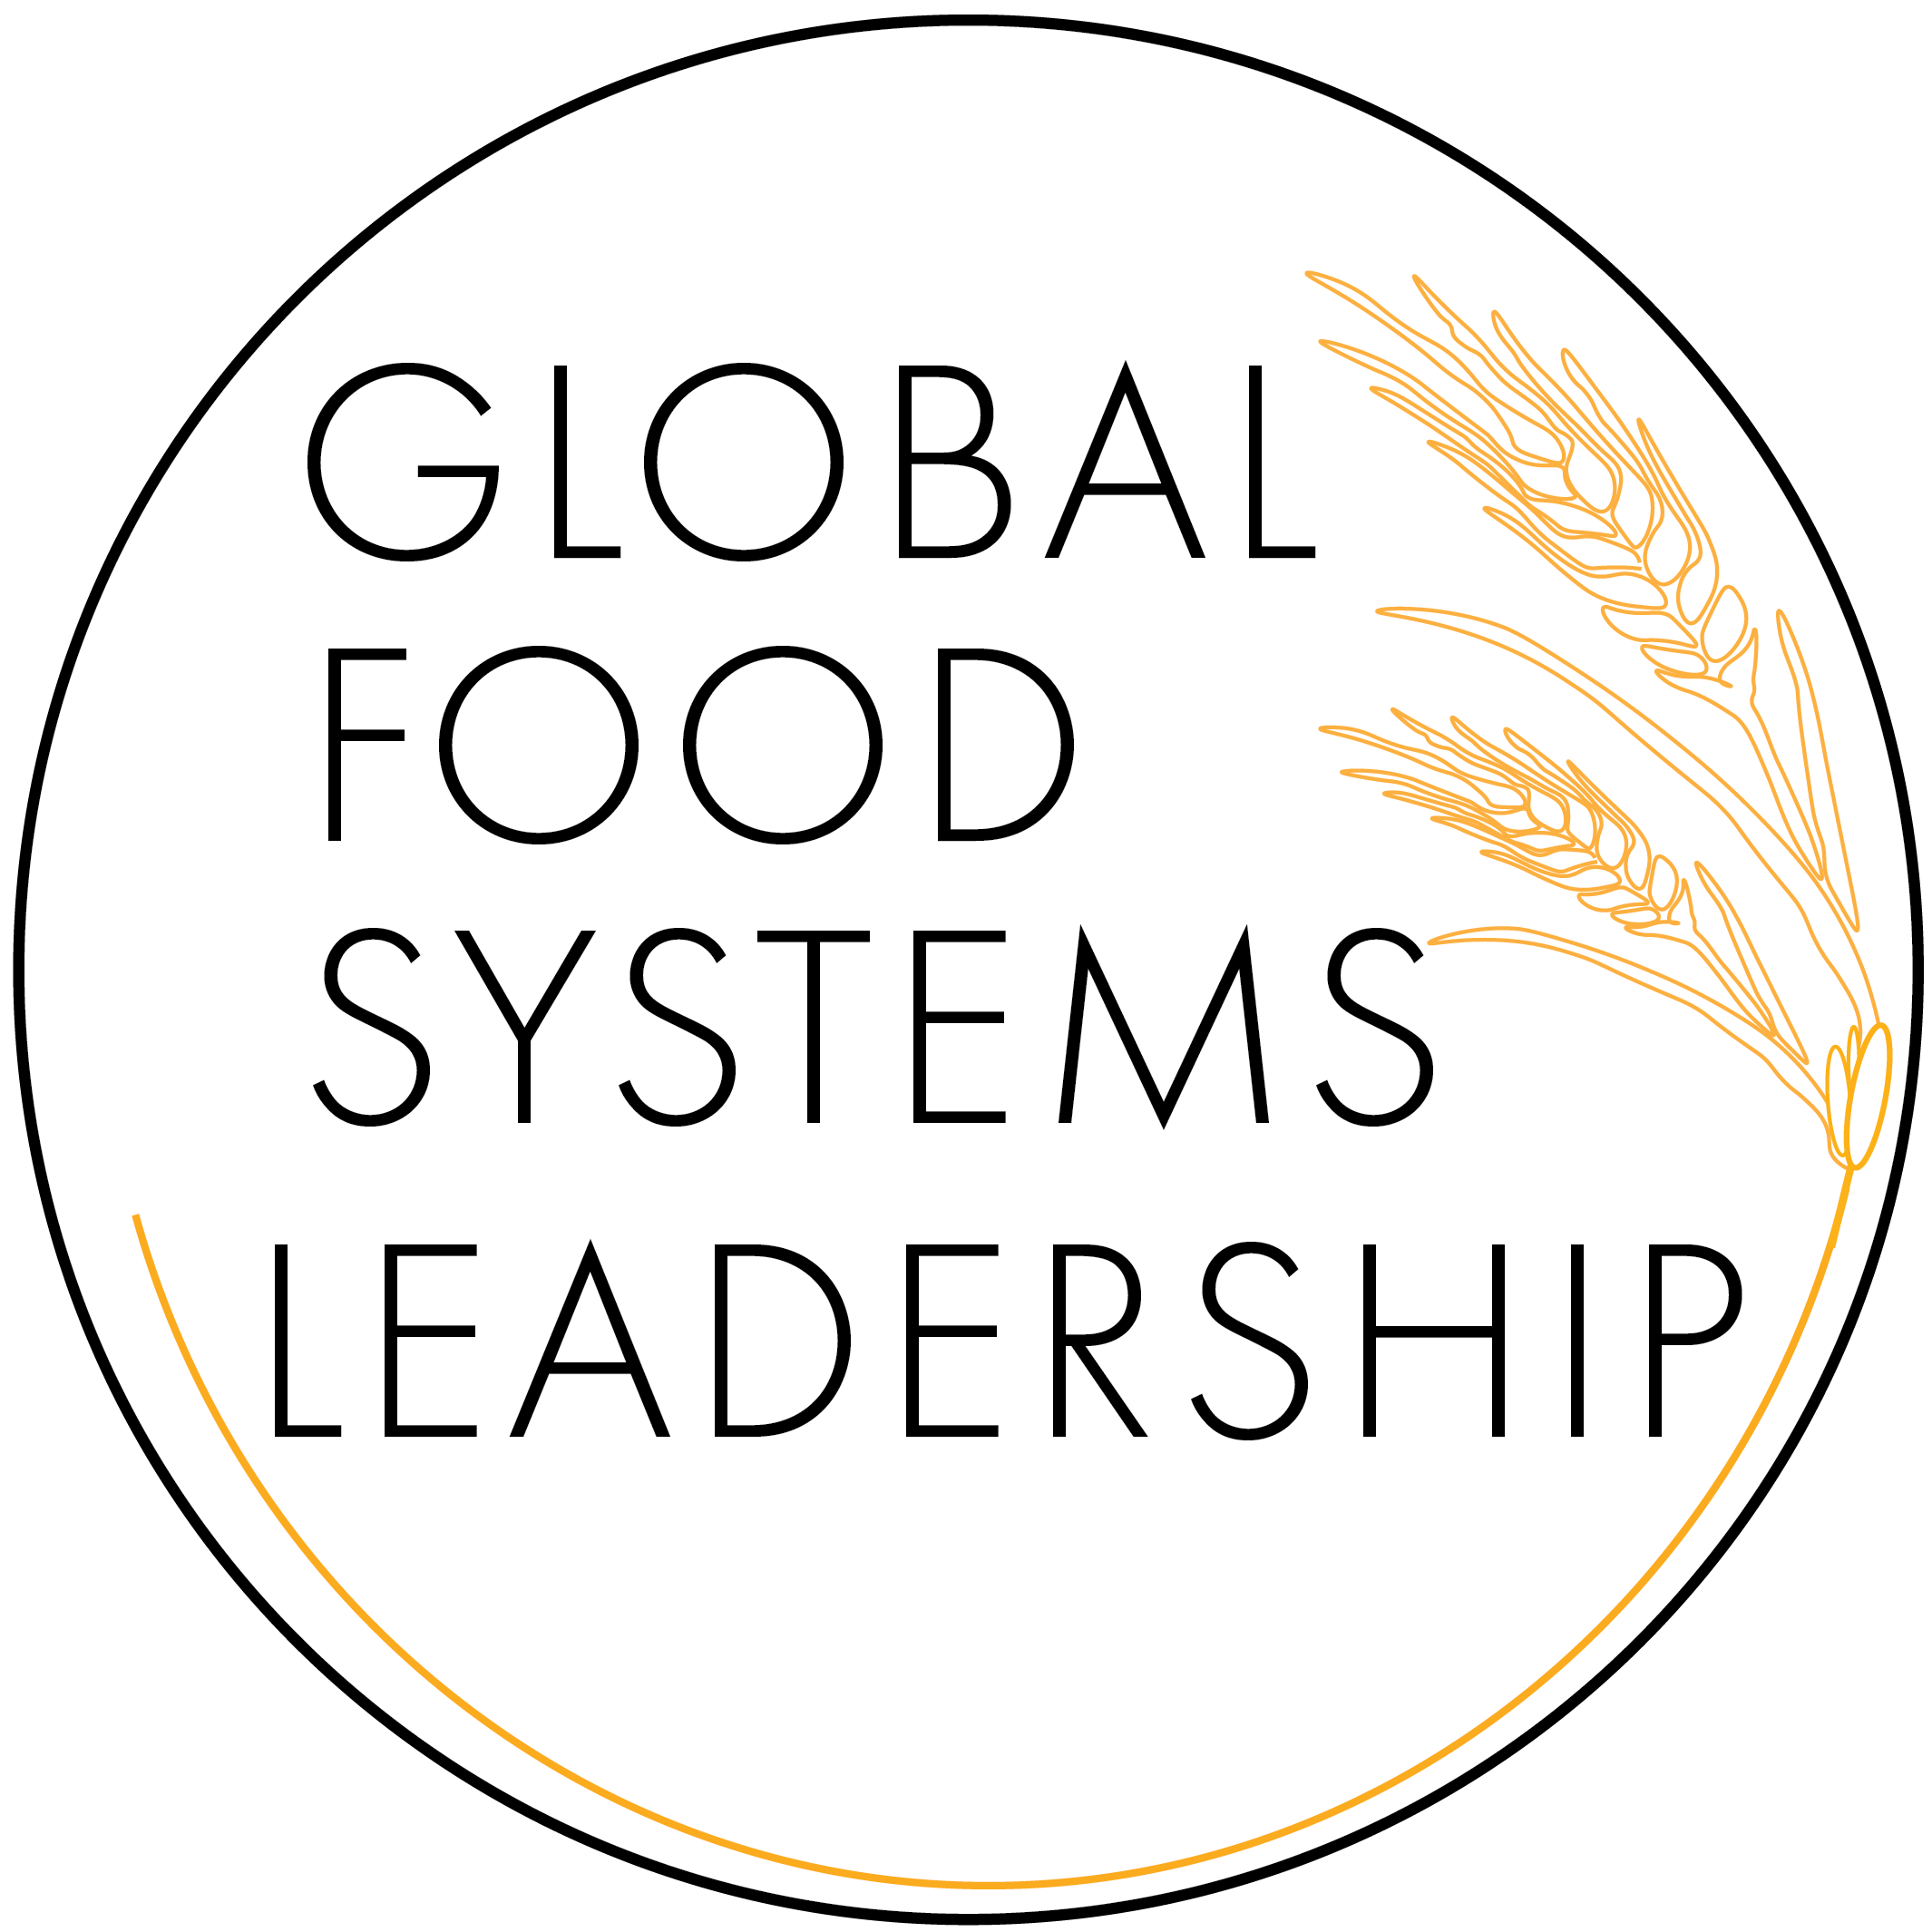 The official logo of K-State's Global Food Systems Leadership program